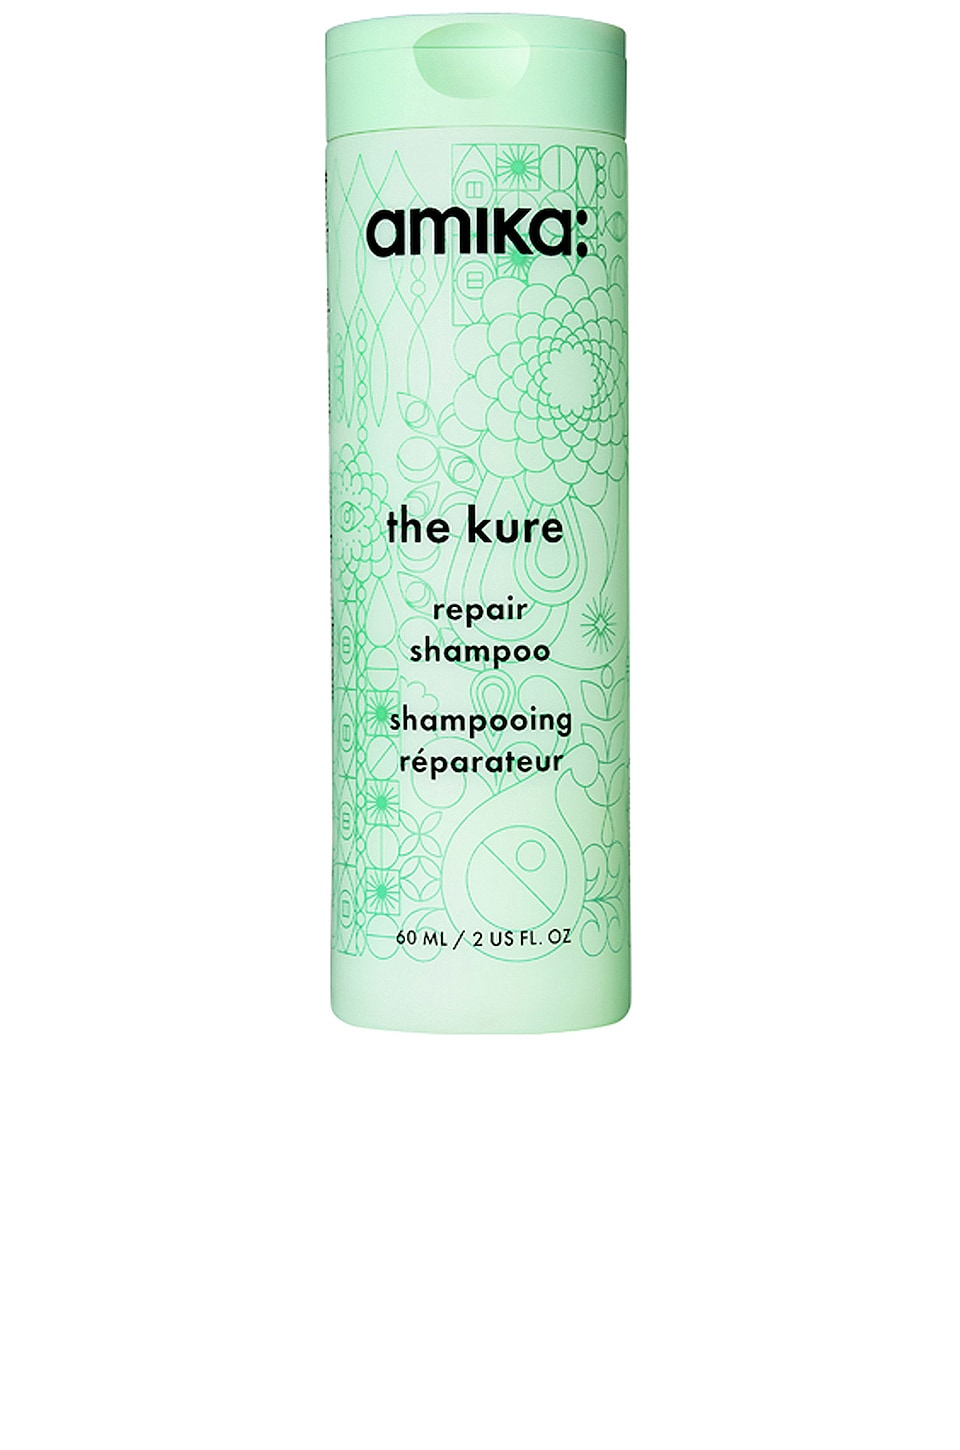 Travel THE KURE Repair Shampoo